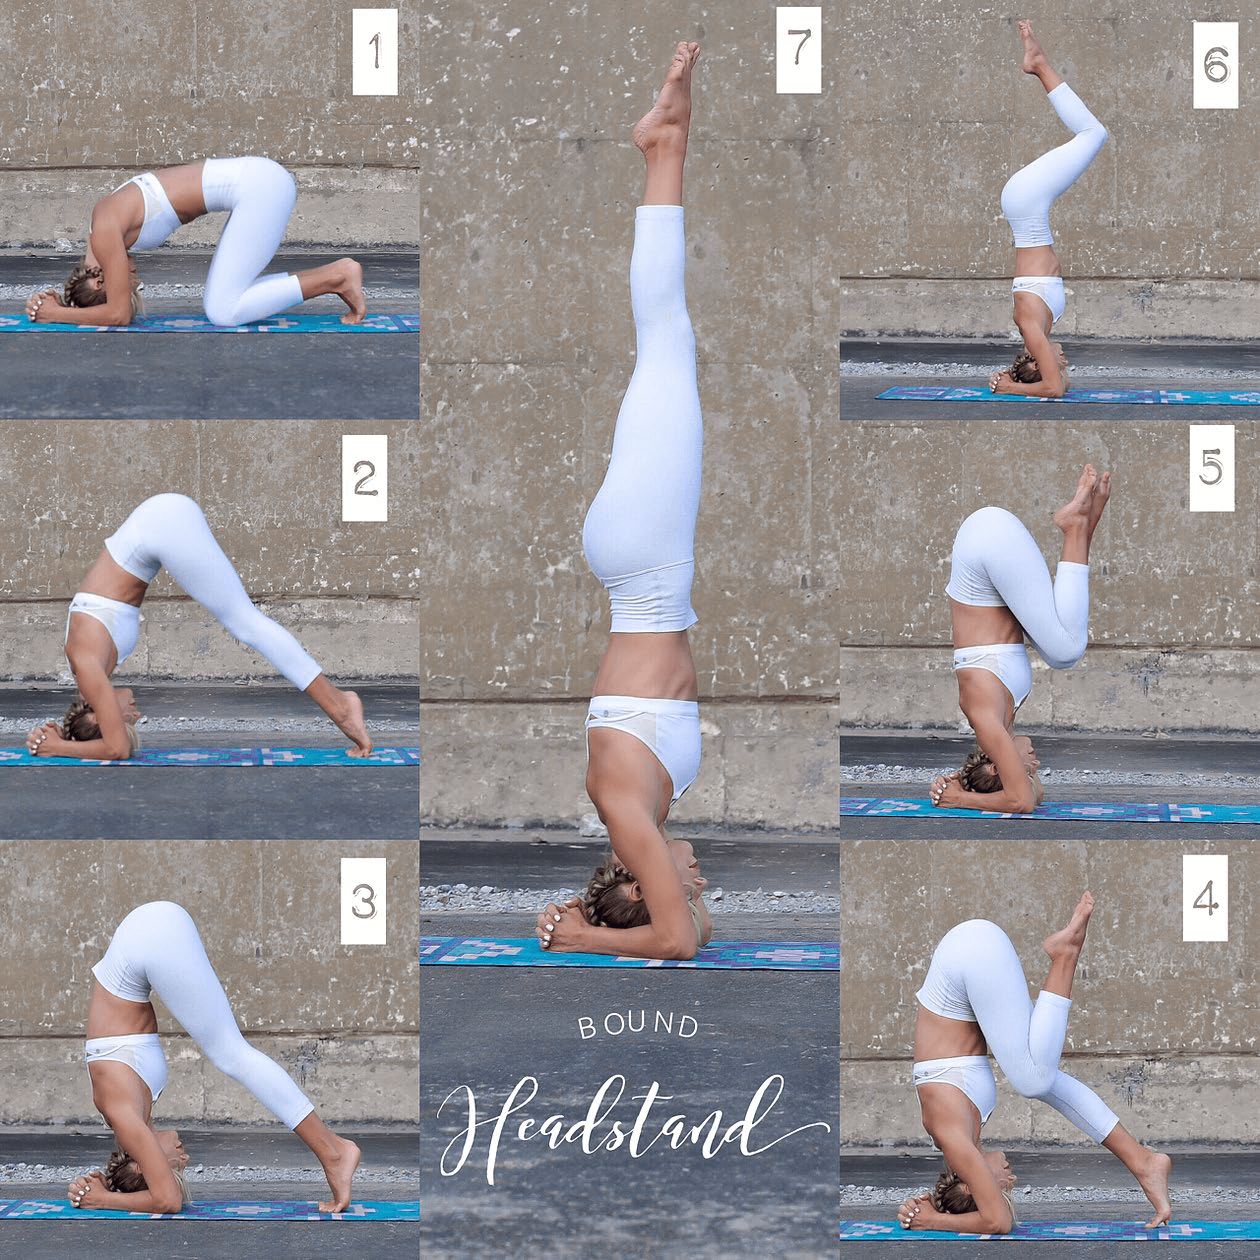 An infographic showing the 7 steps of doing a headstand.